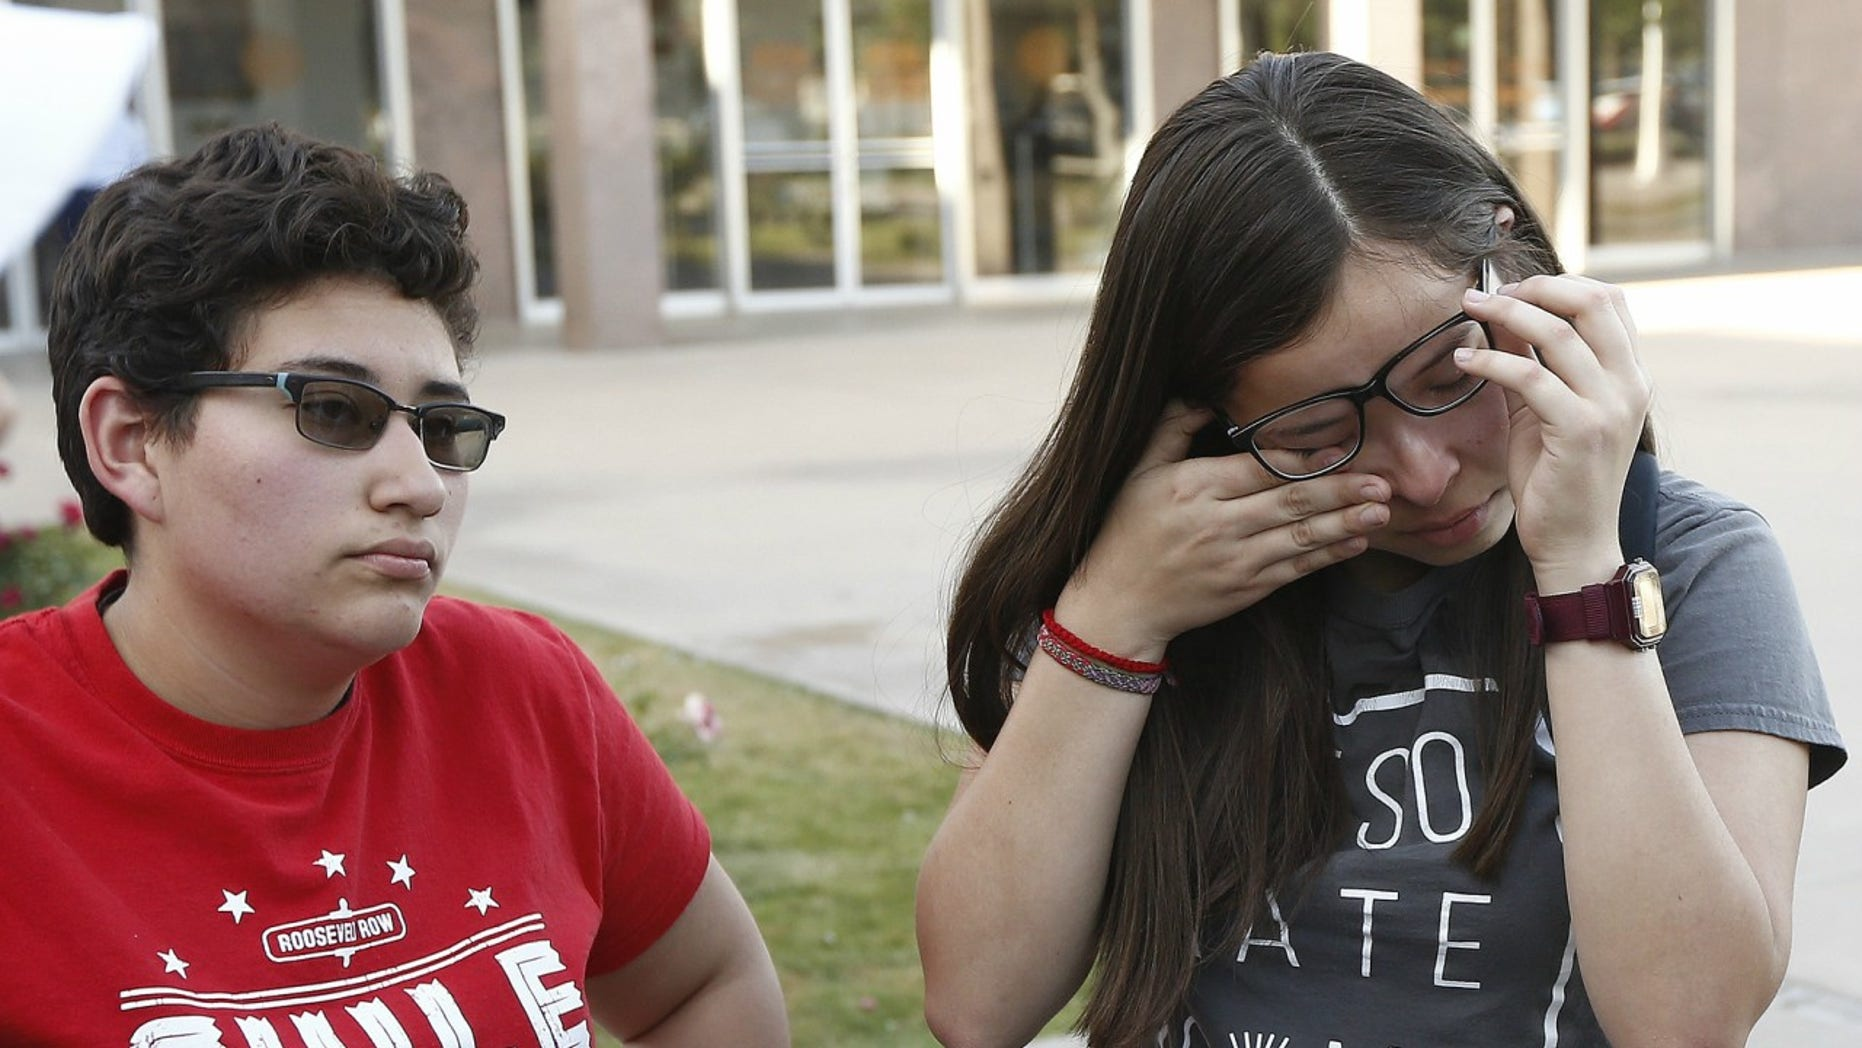 Darian Cruz, right, wipes away tears as she and Jasmin Lopez, left, listen to a friend talk about the Arizona Supreme Court ruling against young immigrants granted deferred deportation status under the 2012 Deferred Action for Childhood Arrivals program, during a demonstration at the Arizona Capitol in Phoenix, April 9, 2018.